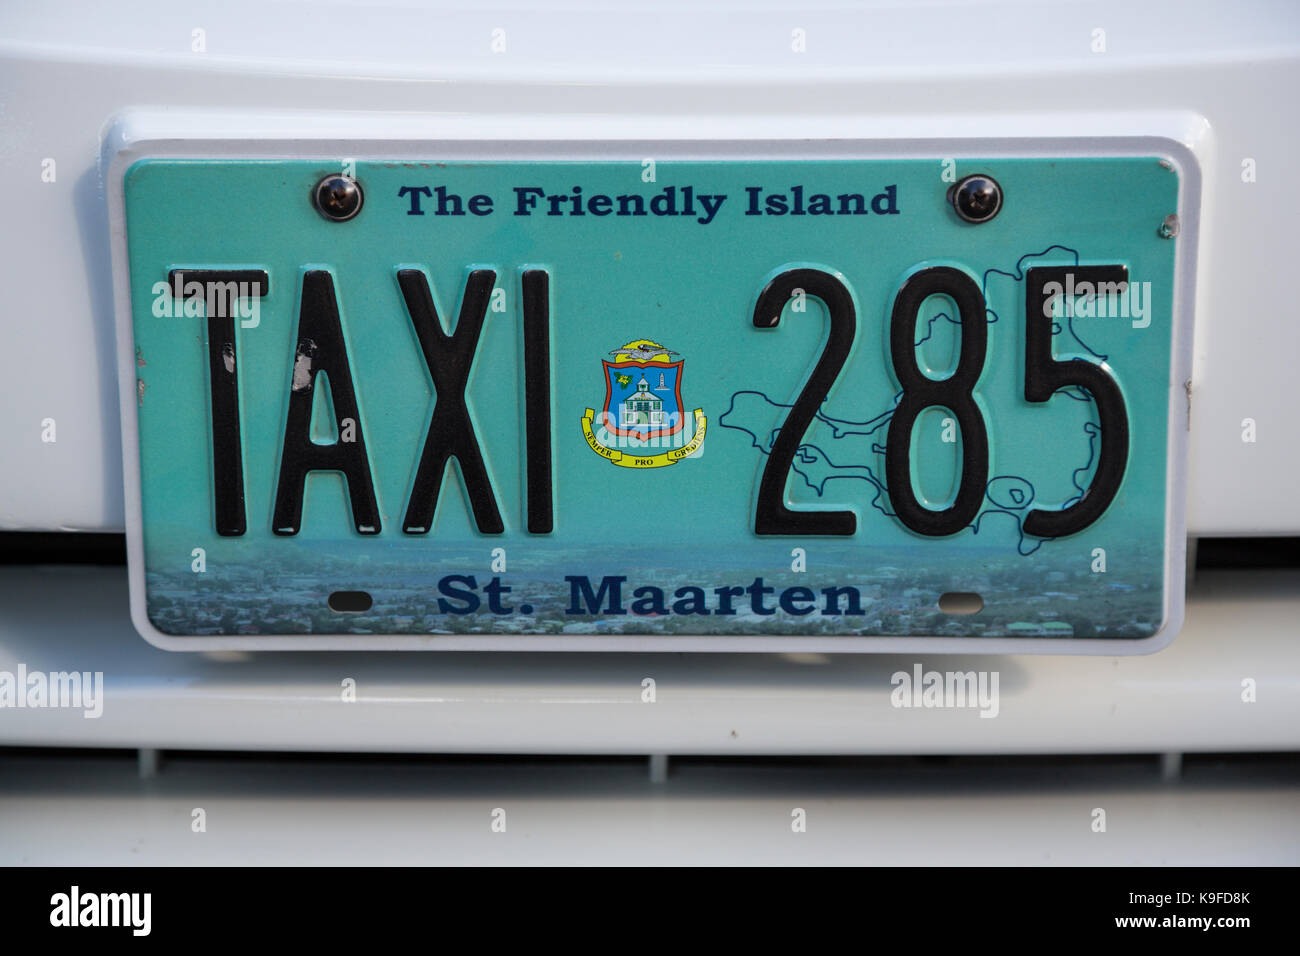 Taxi License Plate Stock Photos & Taxi License Plate Stock Images